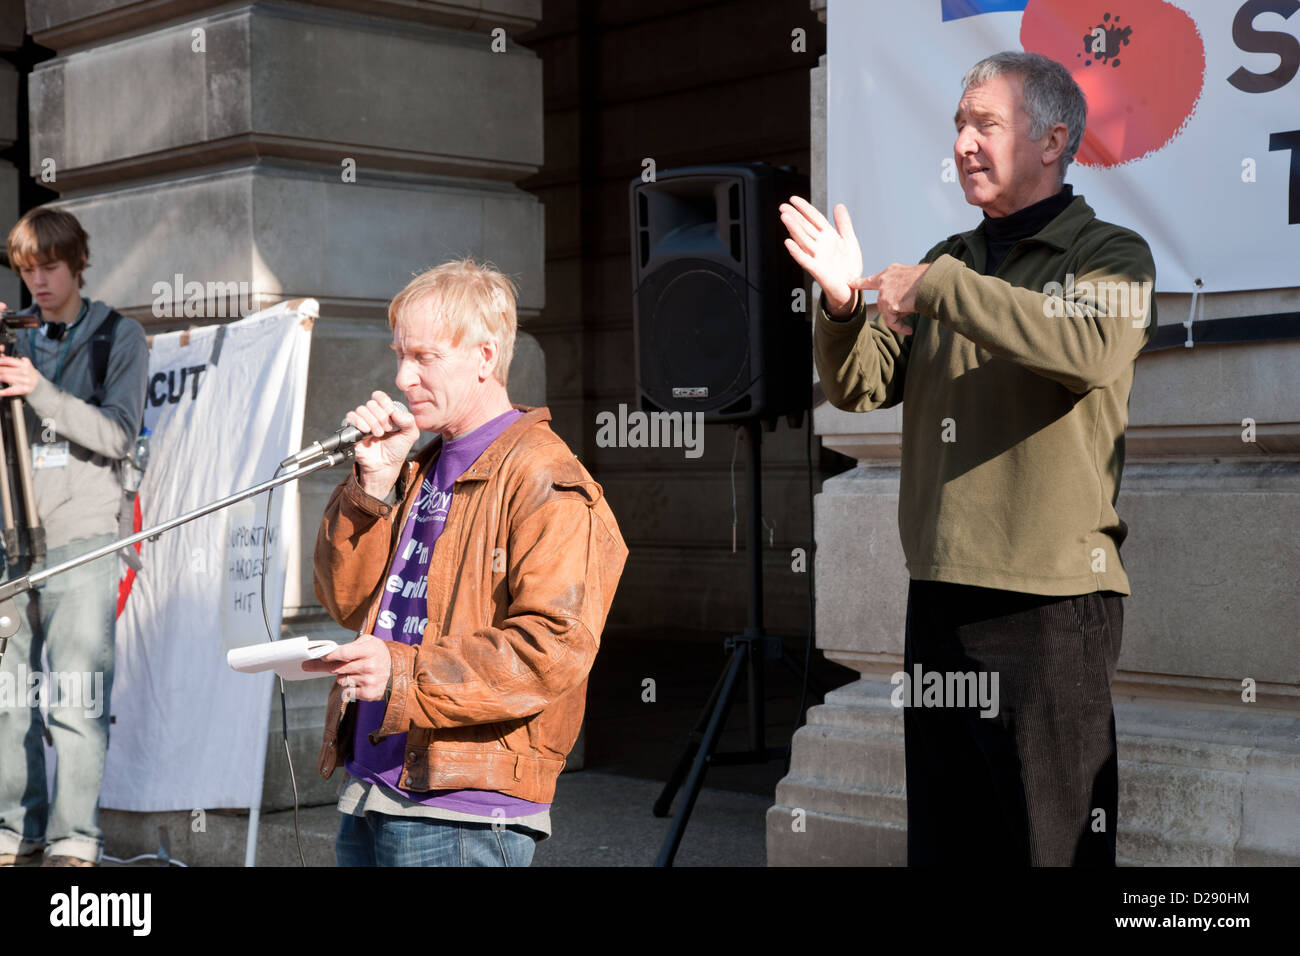 Demonstration against Coalition cuts to disabled people's services and income. - Stock Image